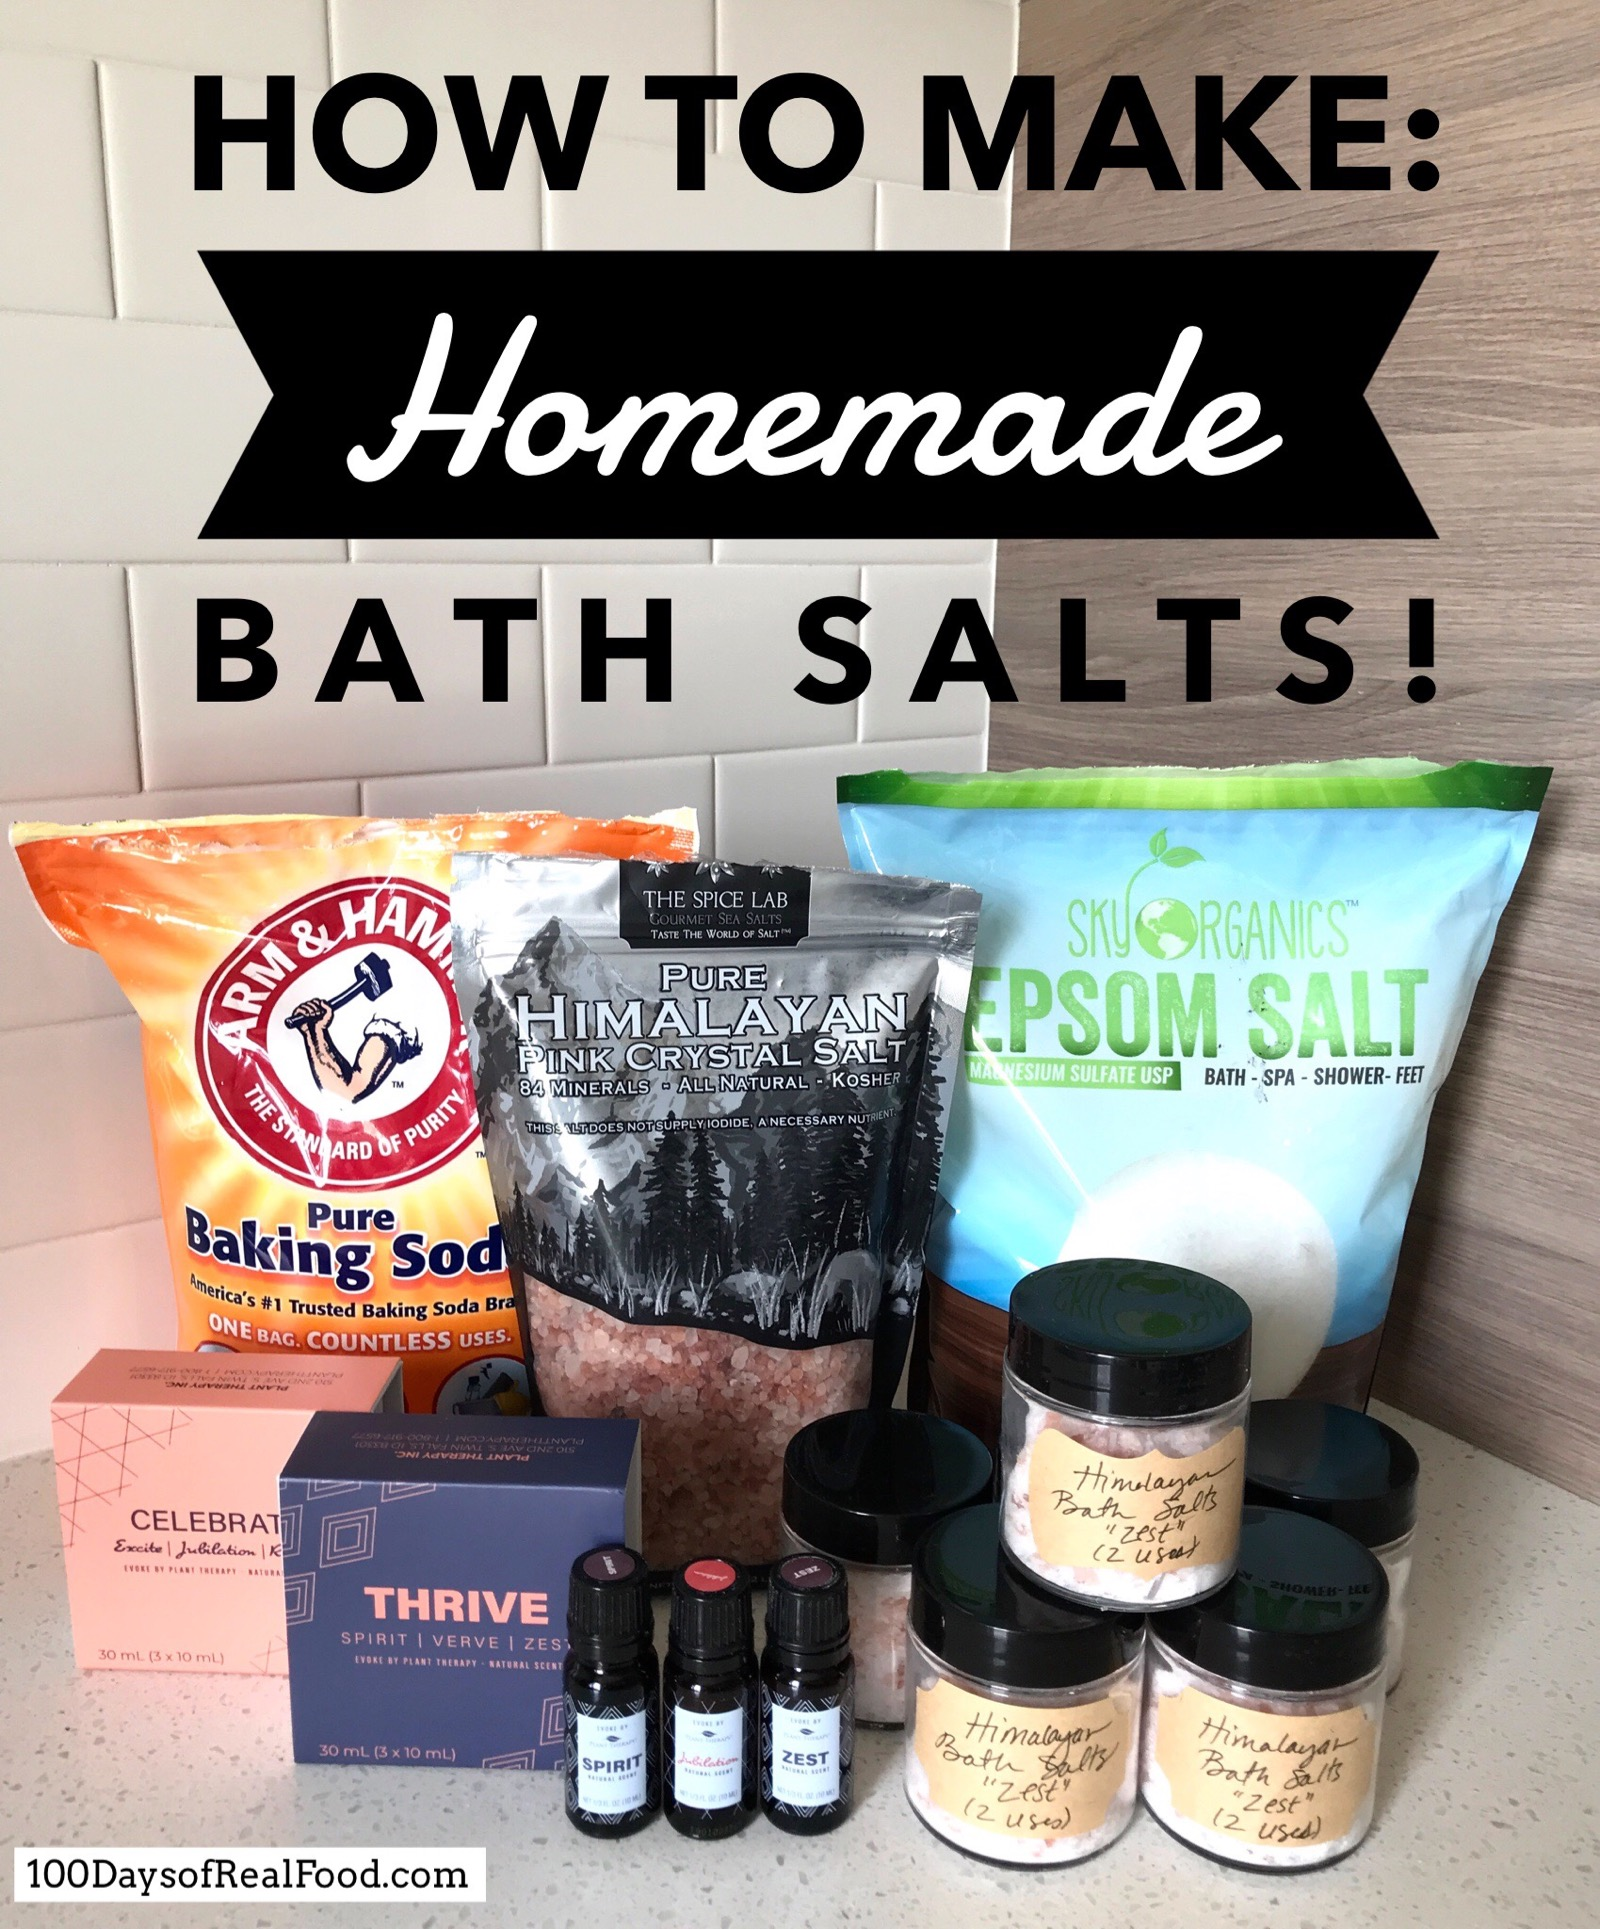 How To Make Homemade Bath Salts In 10